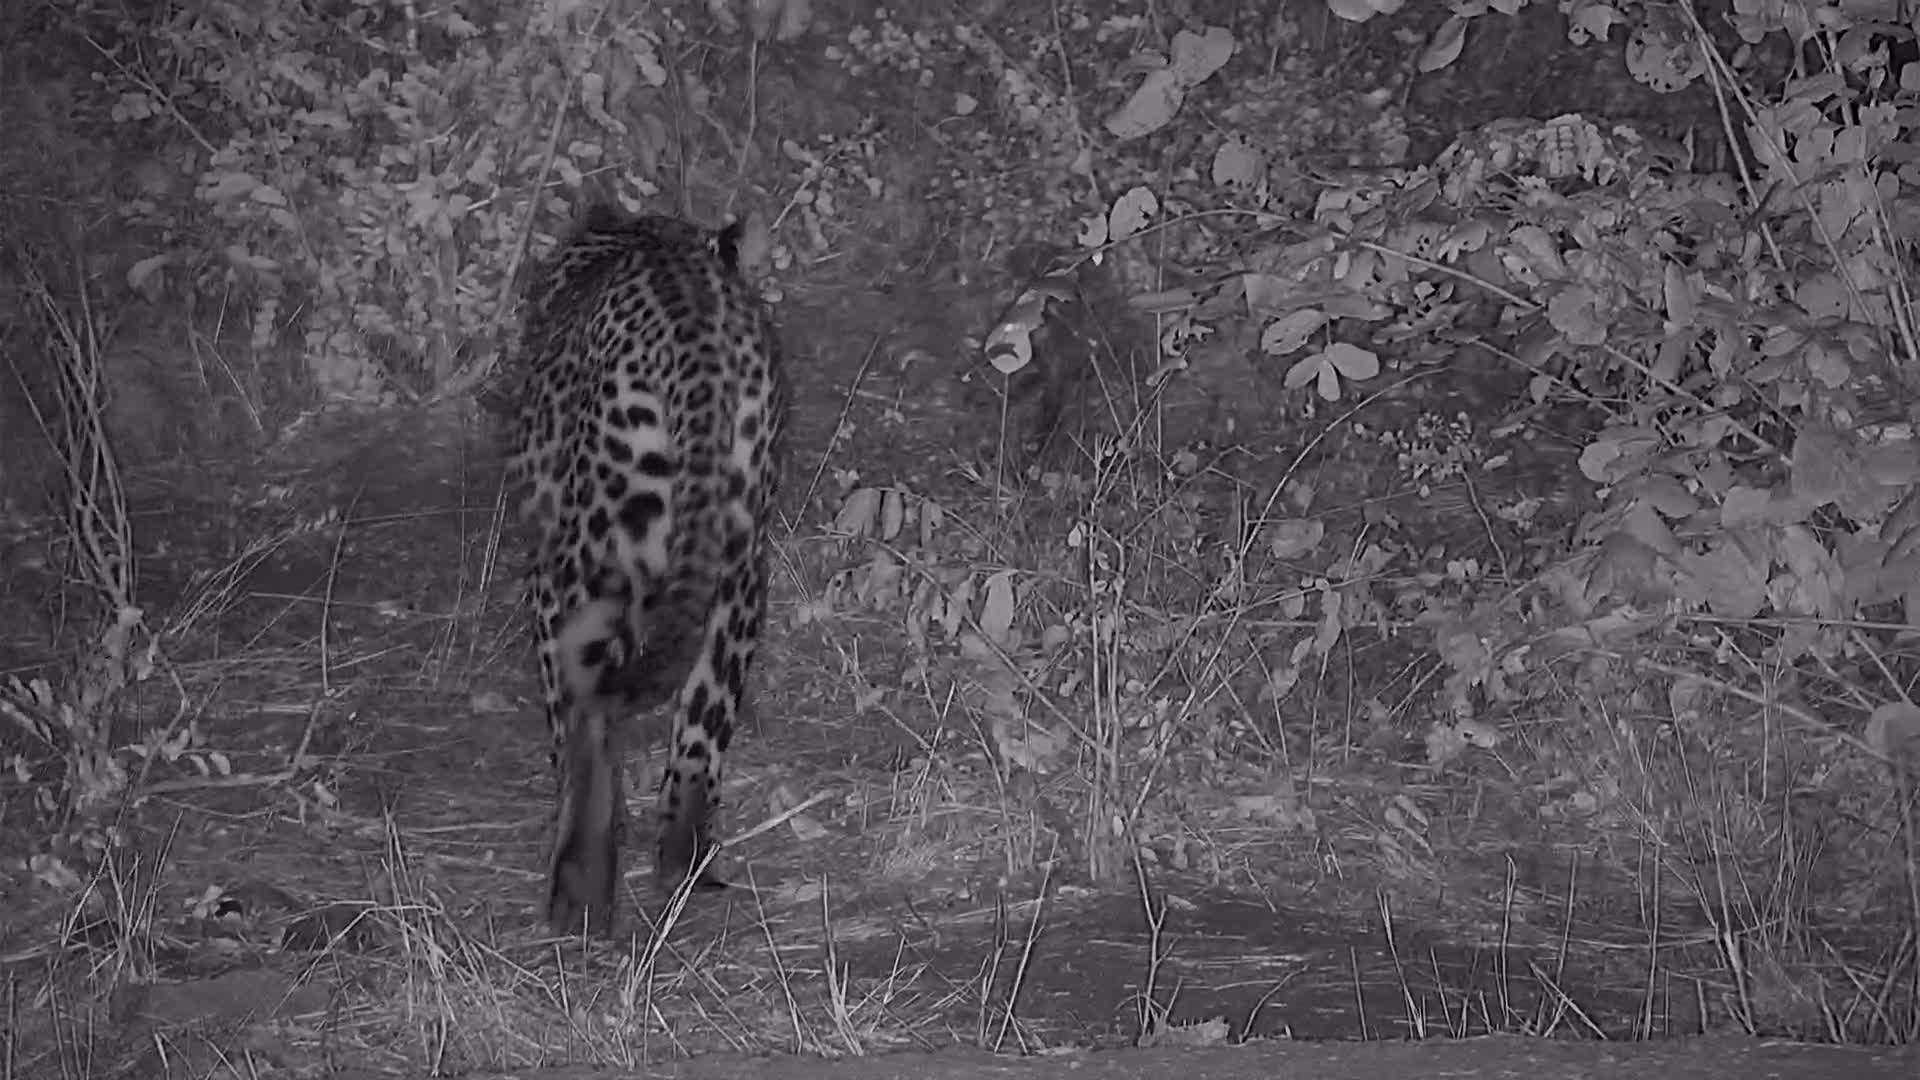 VIDEO:  Leopard with a full belly enjoys a drink Pt 2